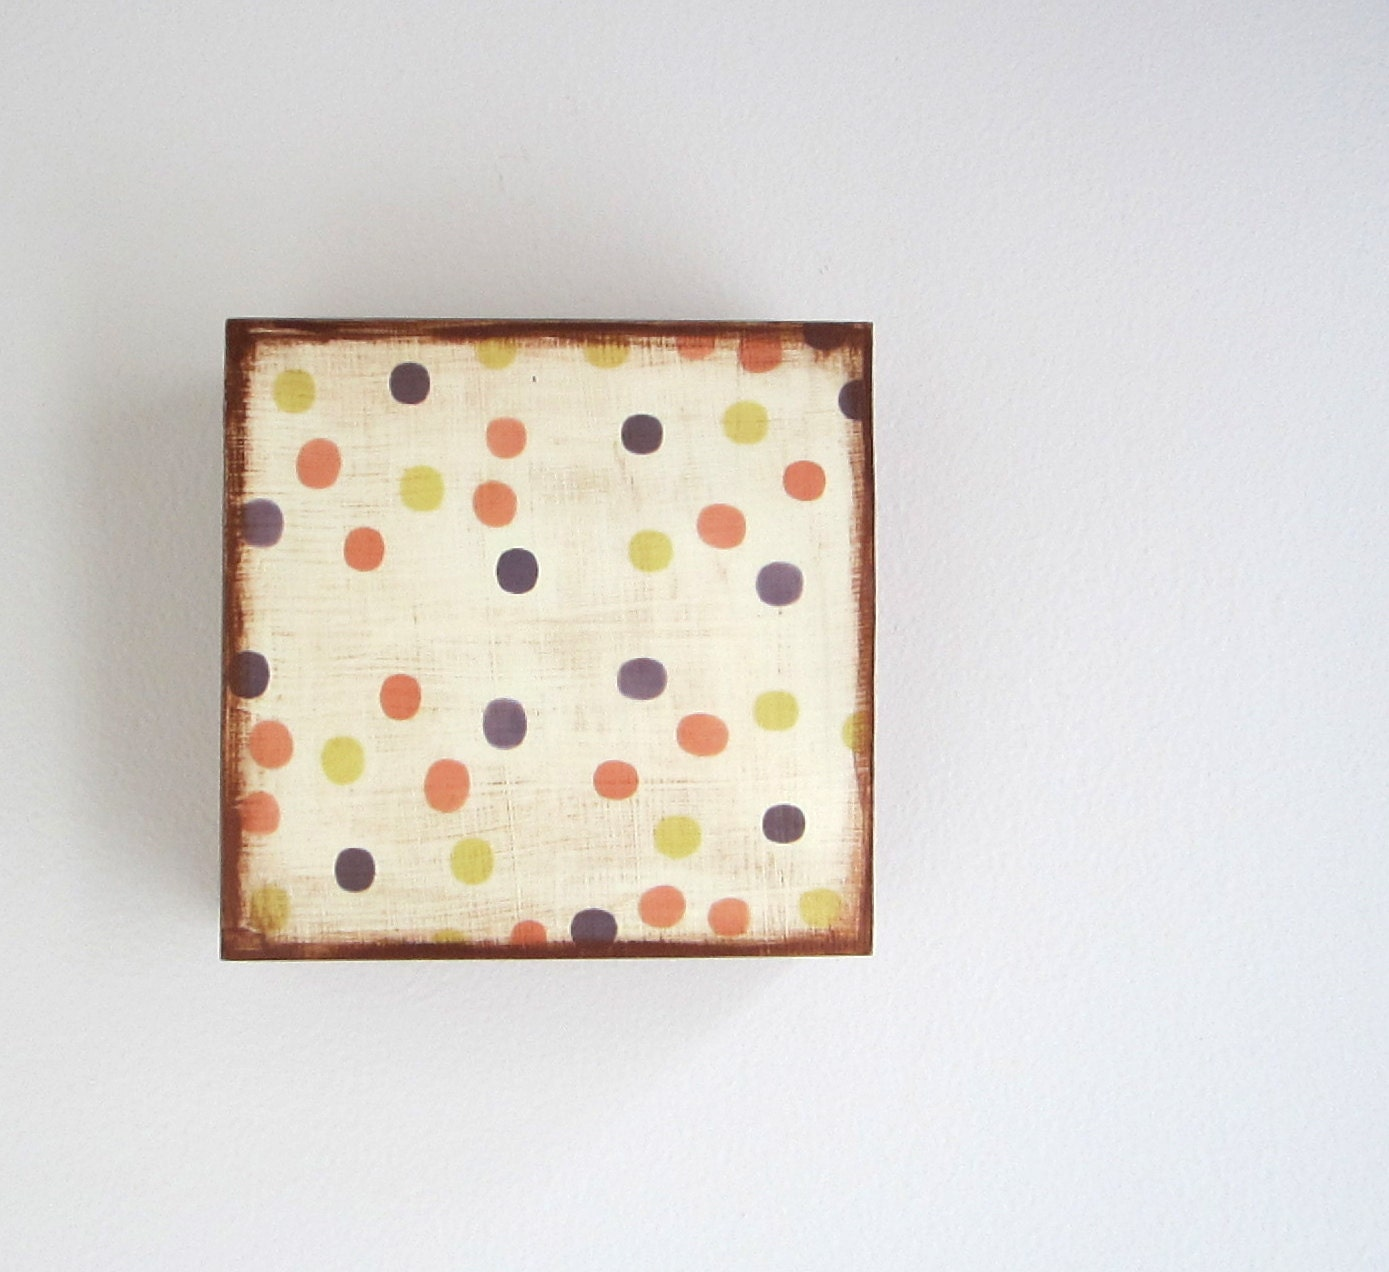 Wall Decor l Art Block l Mod Polka Dots Rust Chartreuse Green Orange Wall hanging 5x5 copper Metallic Geometric Circles redtilestudio wood - redtilestudio